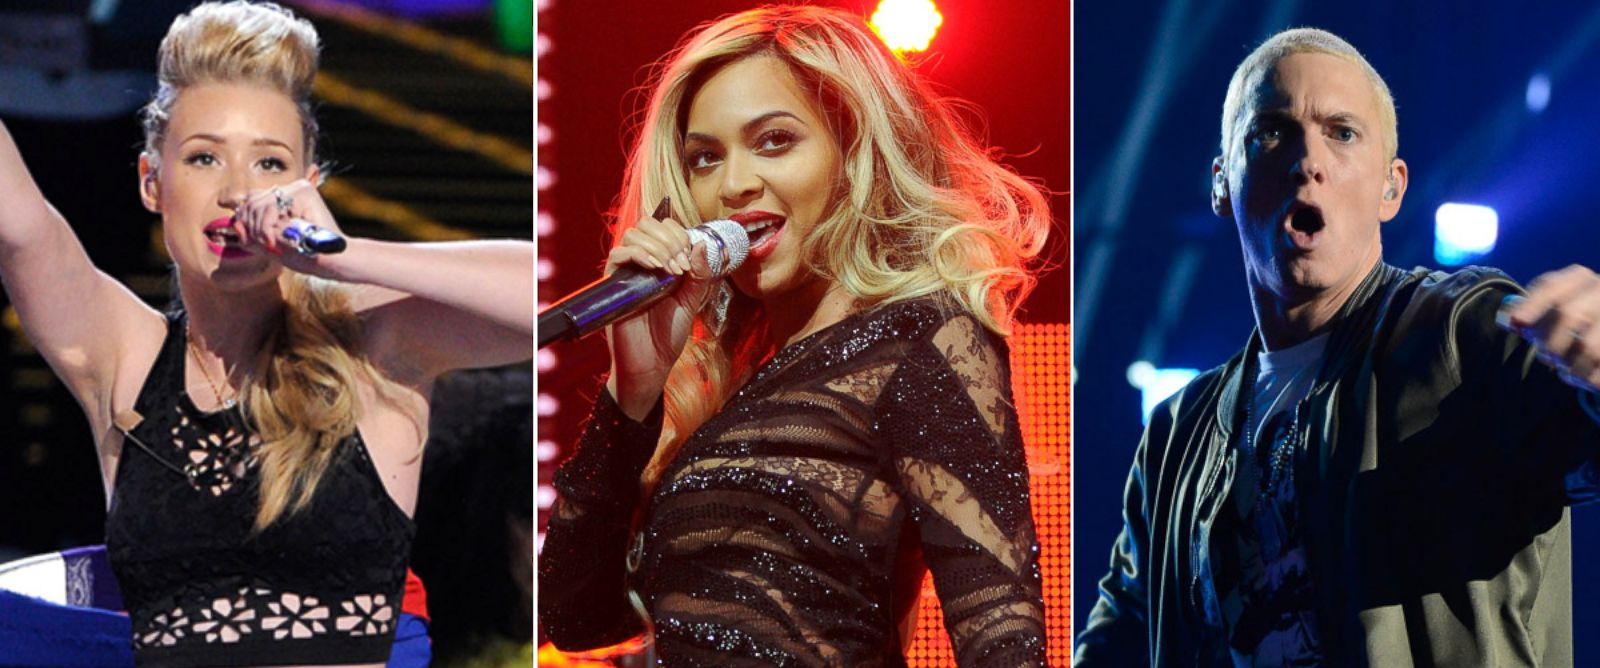 PHOTO: From left, Iggy Azalea, Beyonce Knowles and Eminem